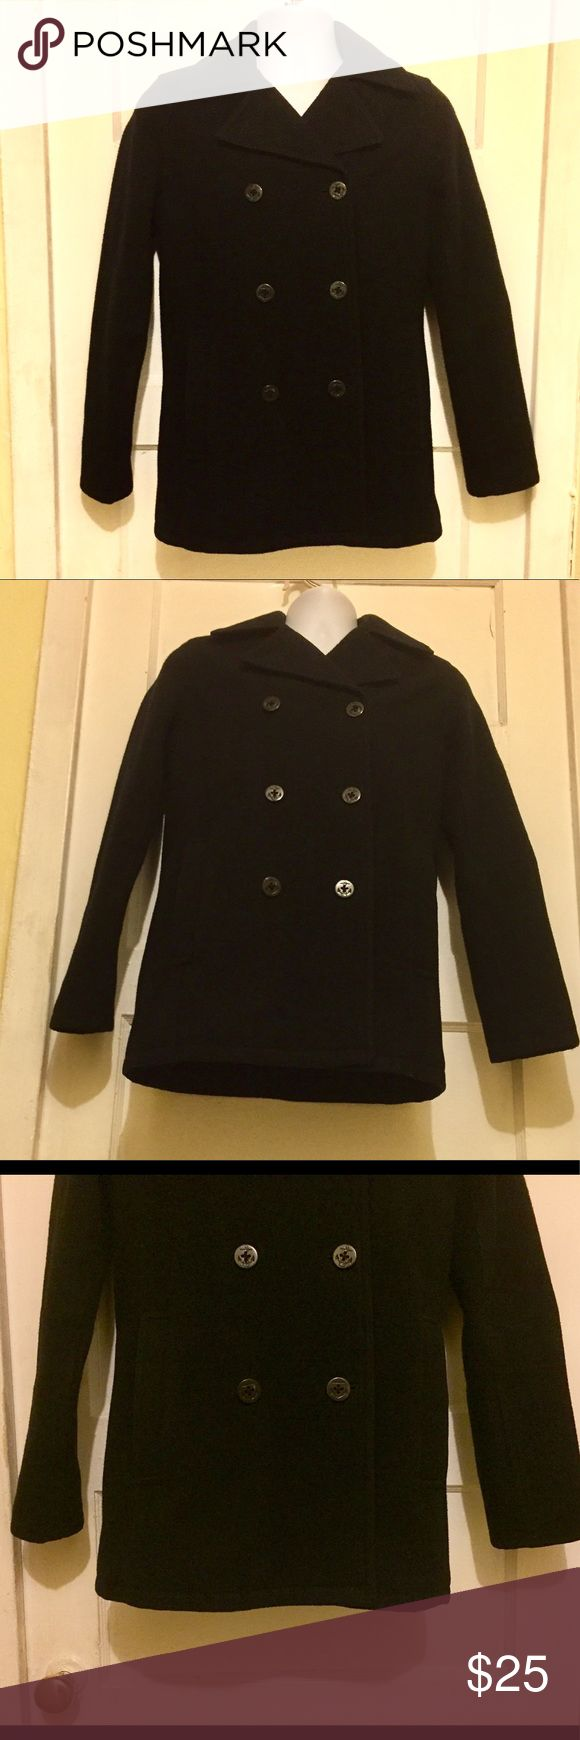 "AEO PEA COAT This AEO Pea Coat is in a Size: XS It is meant for men but can also be worn by women totally fine.  It has been used but is in good condition. Sleeve Length: 24.5"" Length from shoulders to bottom: 28.5"" Shoulder to Shoulder: 15.5"" Pit to Pit: 28"" American Eagle Outfitters Jackets & Coats Pea Coats"